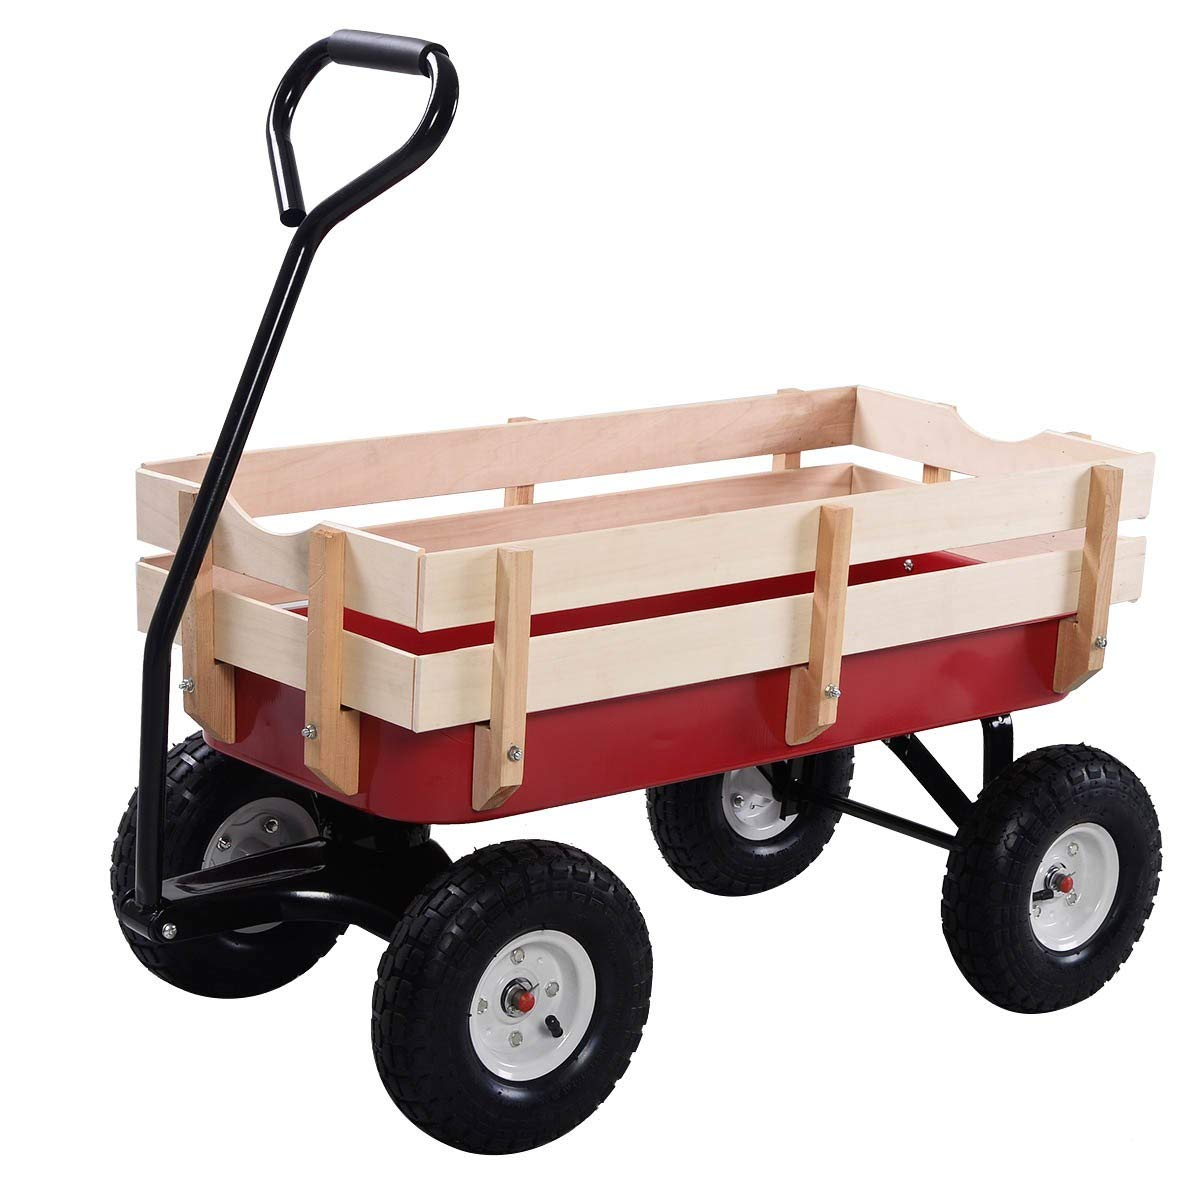 Dayanaprincess Outdoor Pulling Garden Cart Wagon with Wood Railing Removable Wooden Side Panels Bed Solid Construction Yard Lawn Decor by Dayanaprincess